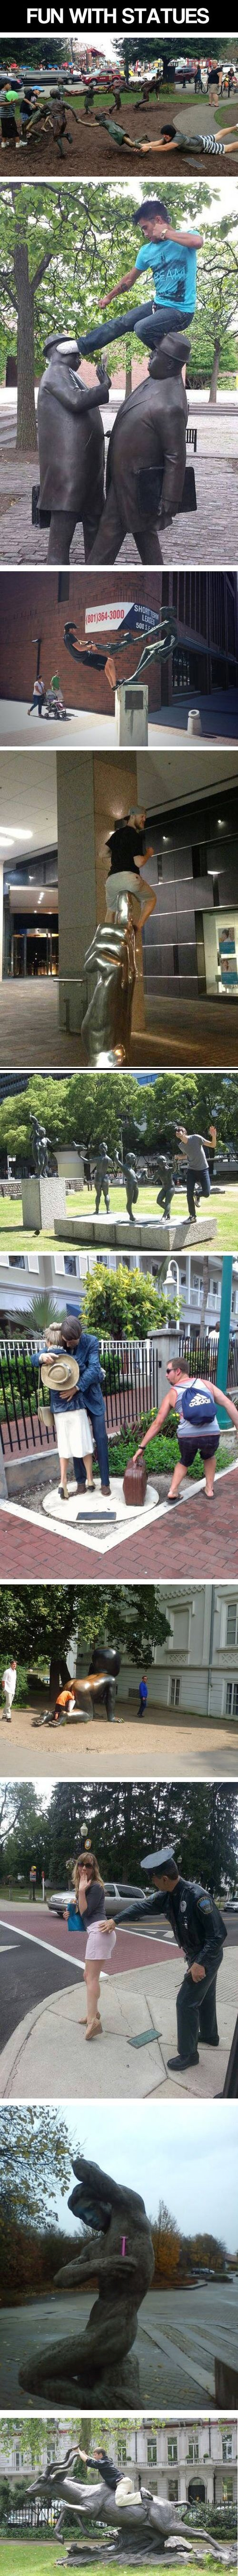 Fun with Statues.  I need to find some and do this!